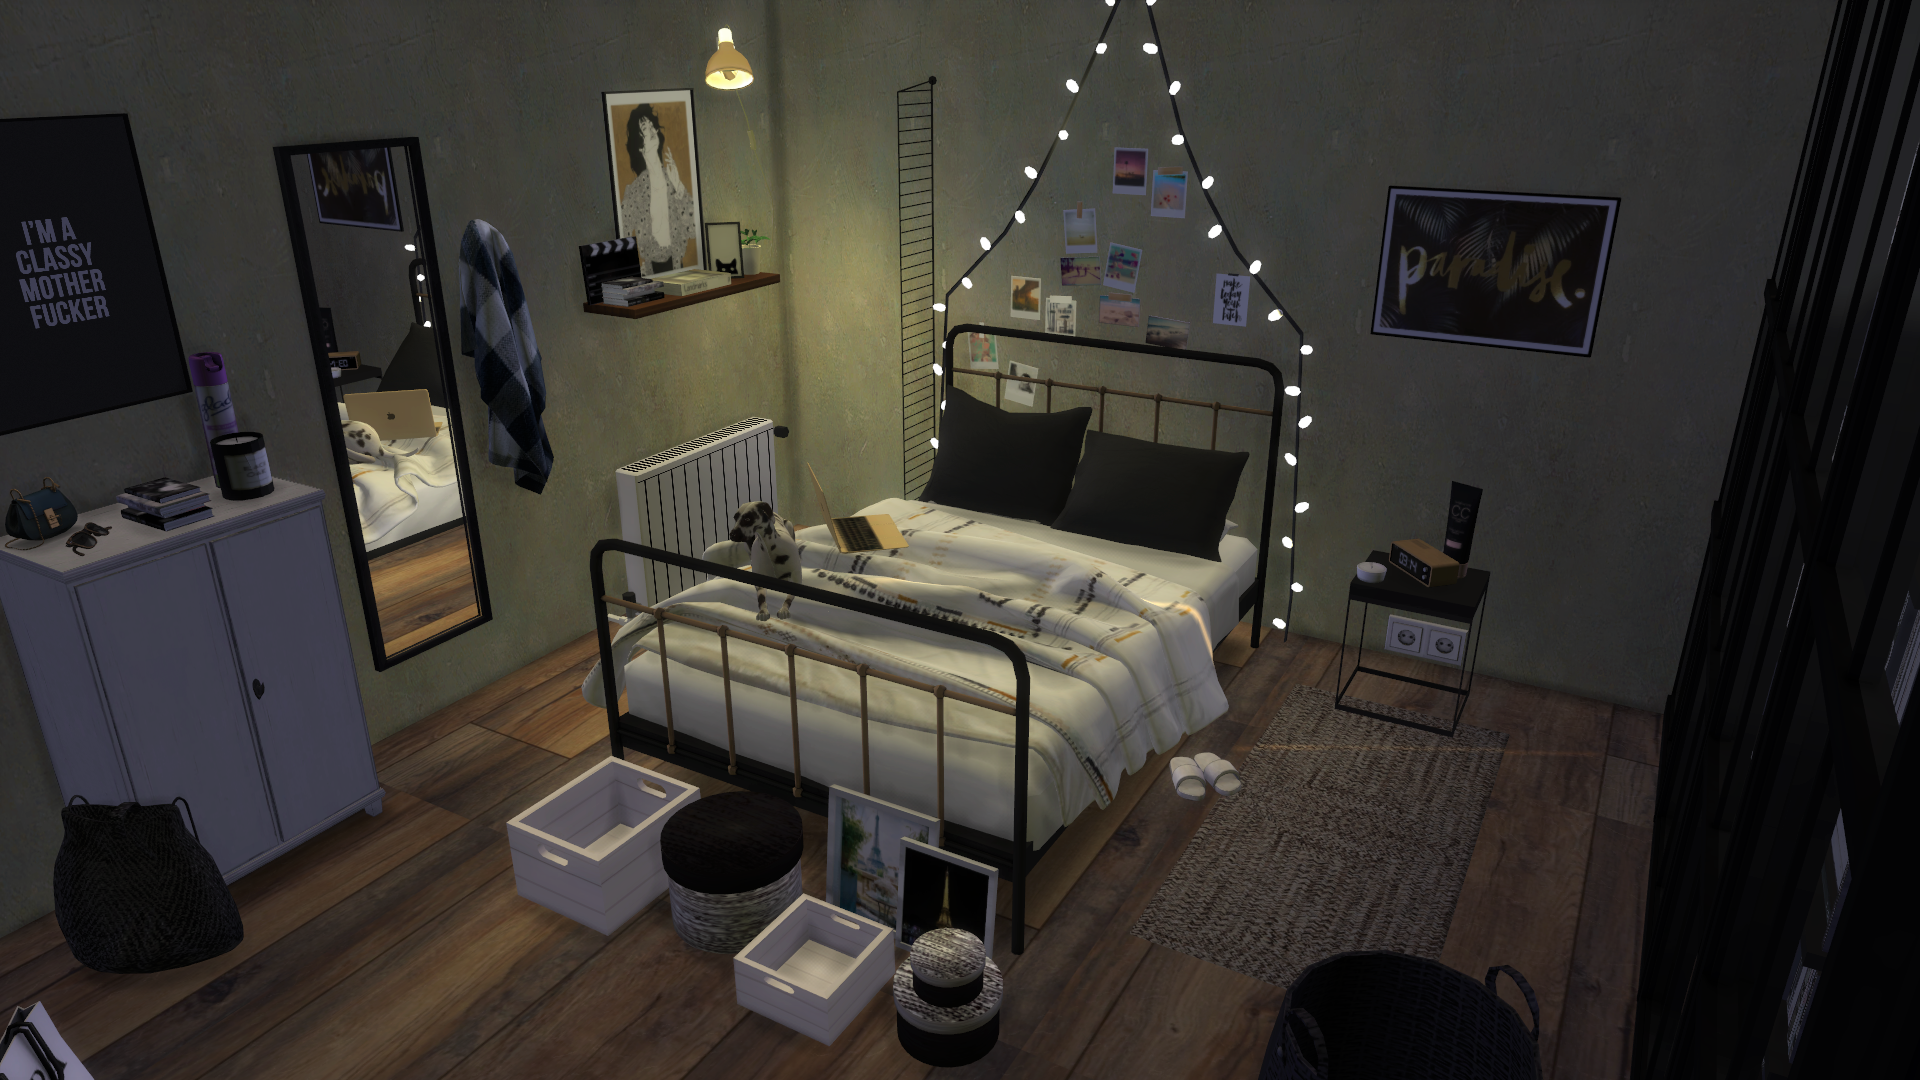 YOU HAVE TO ACTIVATE BB MOVEOBJECTS BEFORE PLACING THE BEDROOM